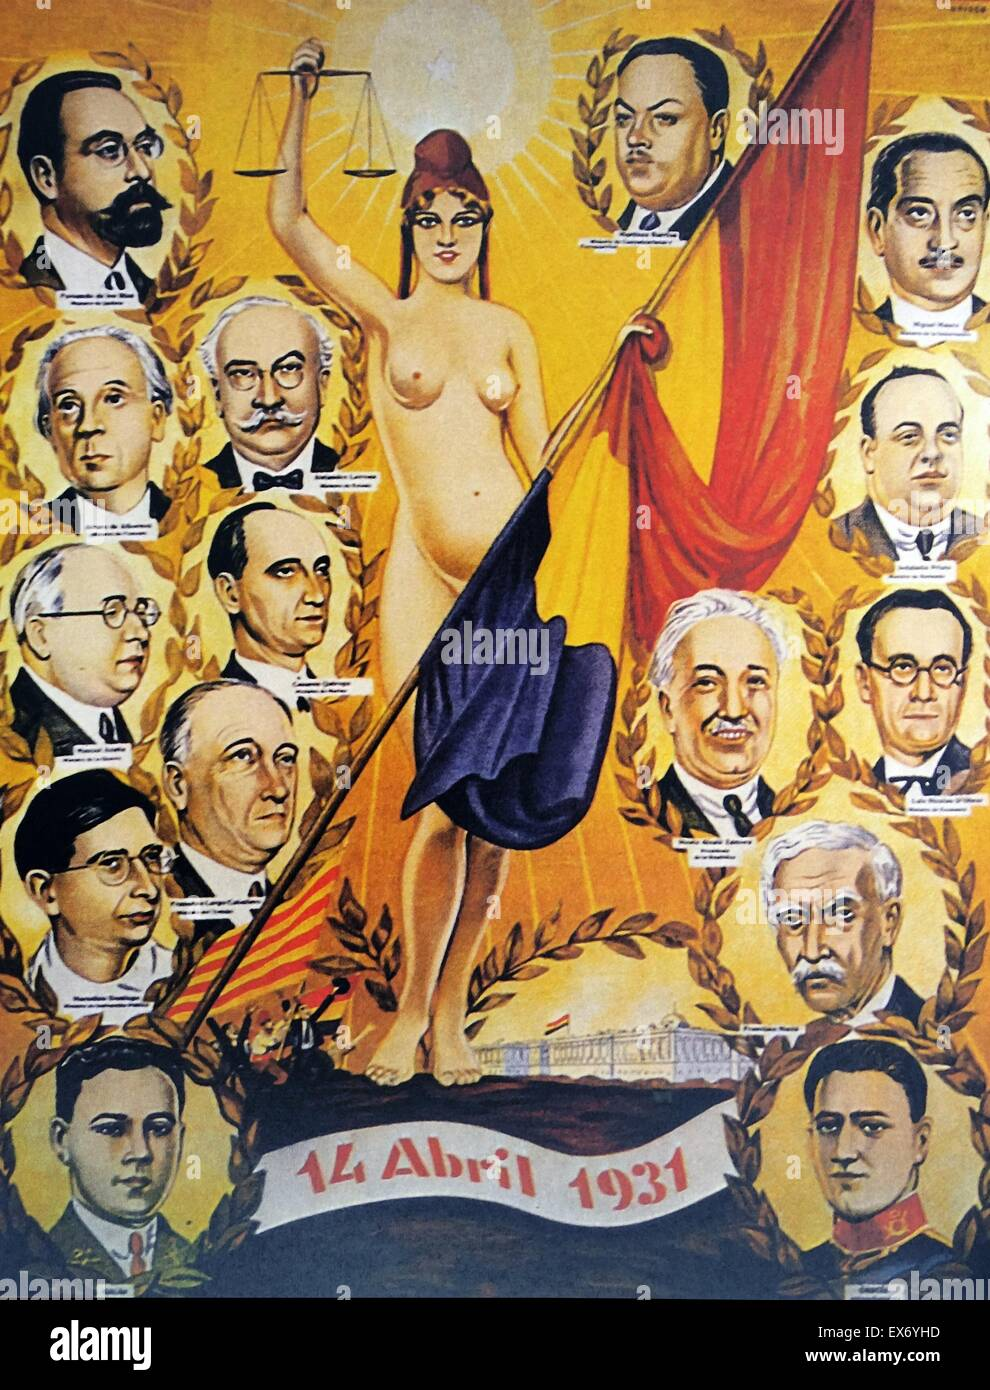 A poster celebrating the leaders of the Spanish Republic 1931 - Stock Image